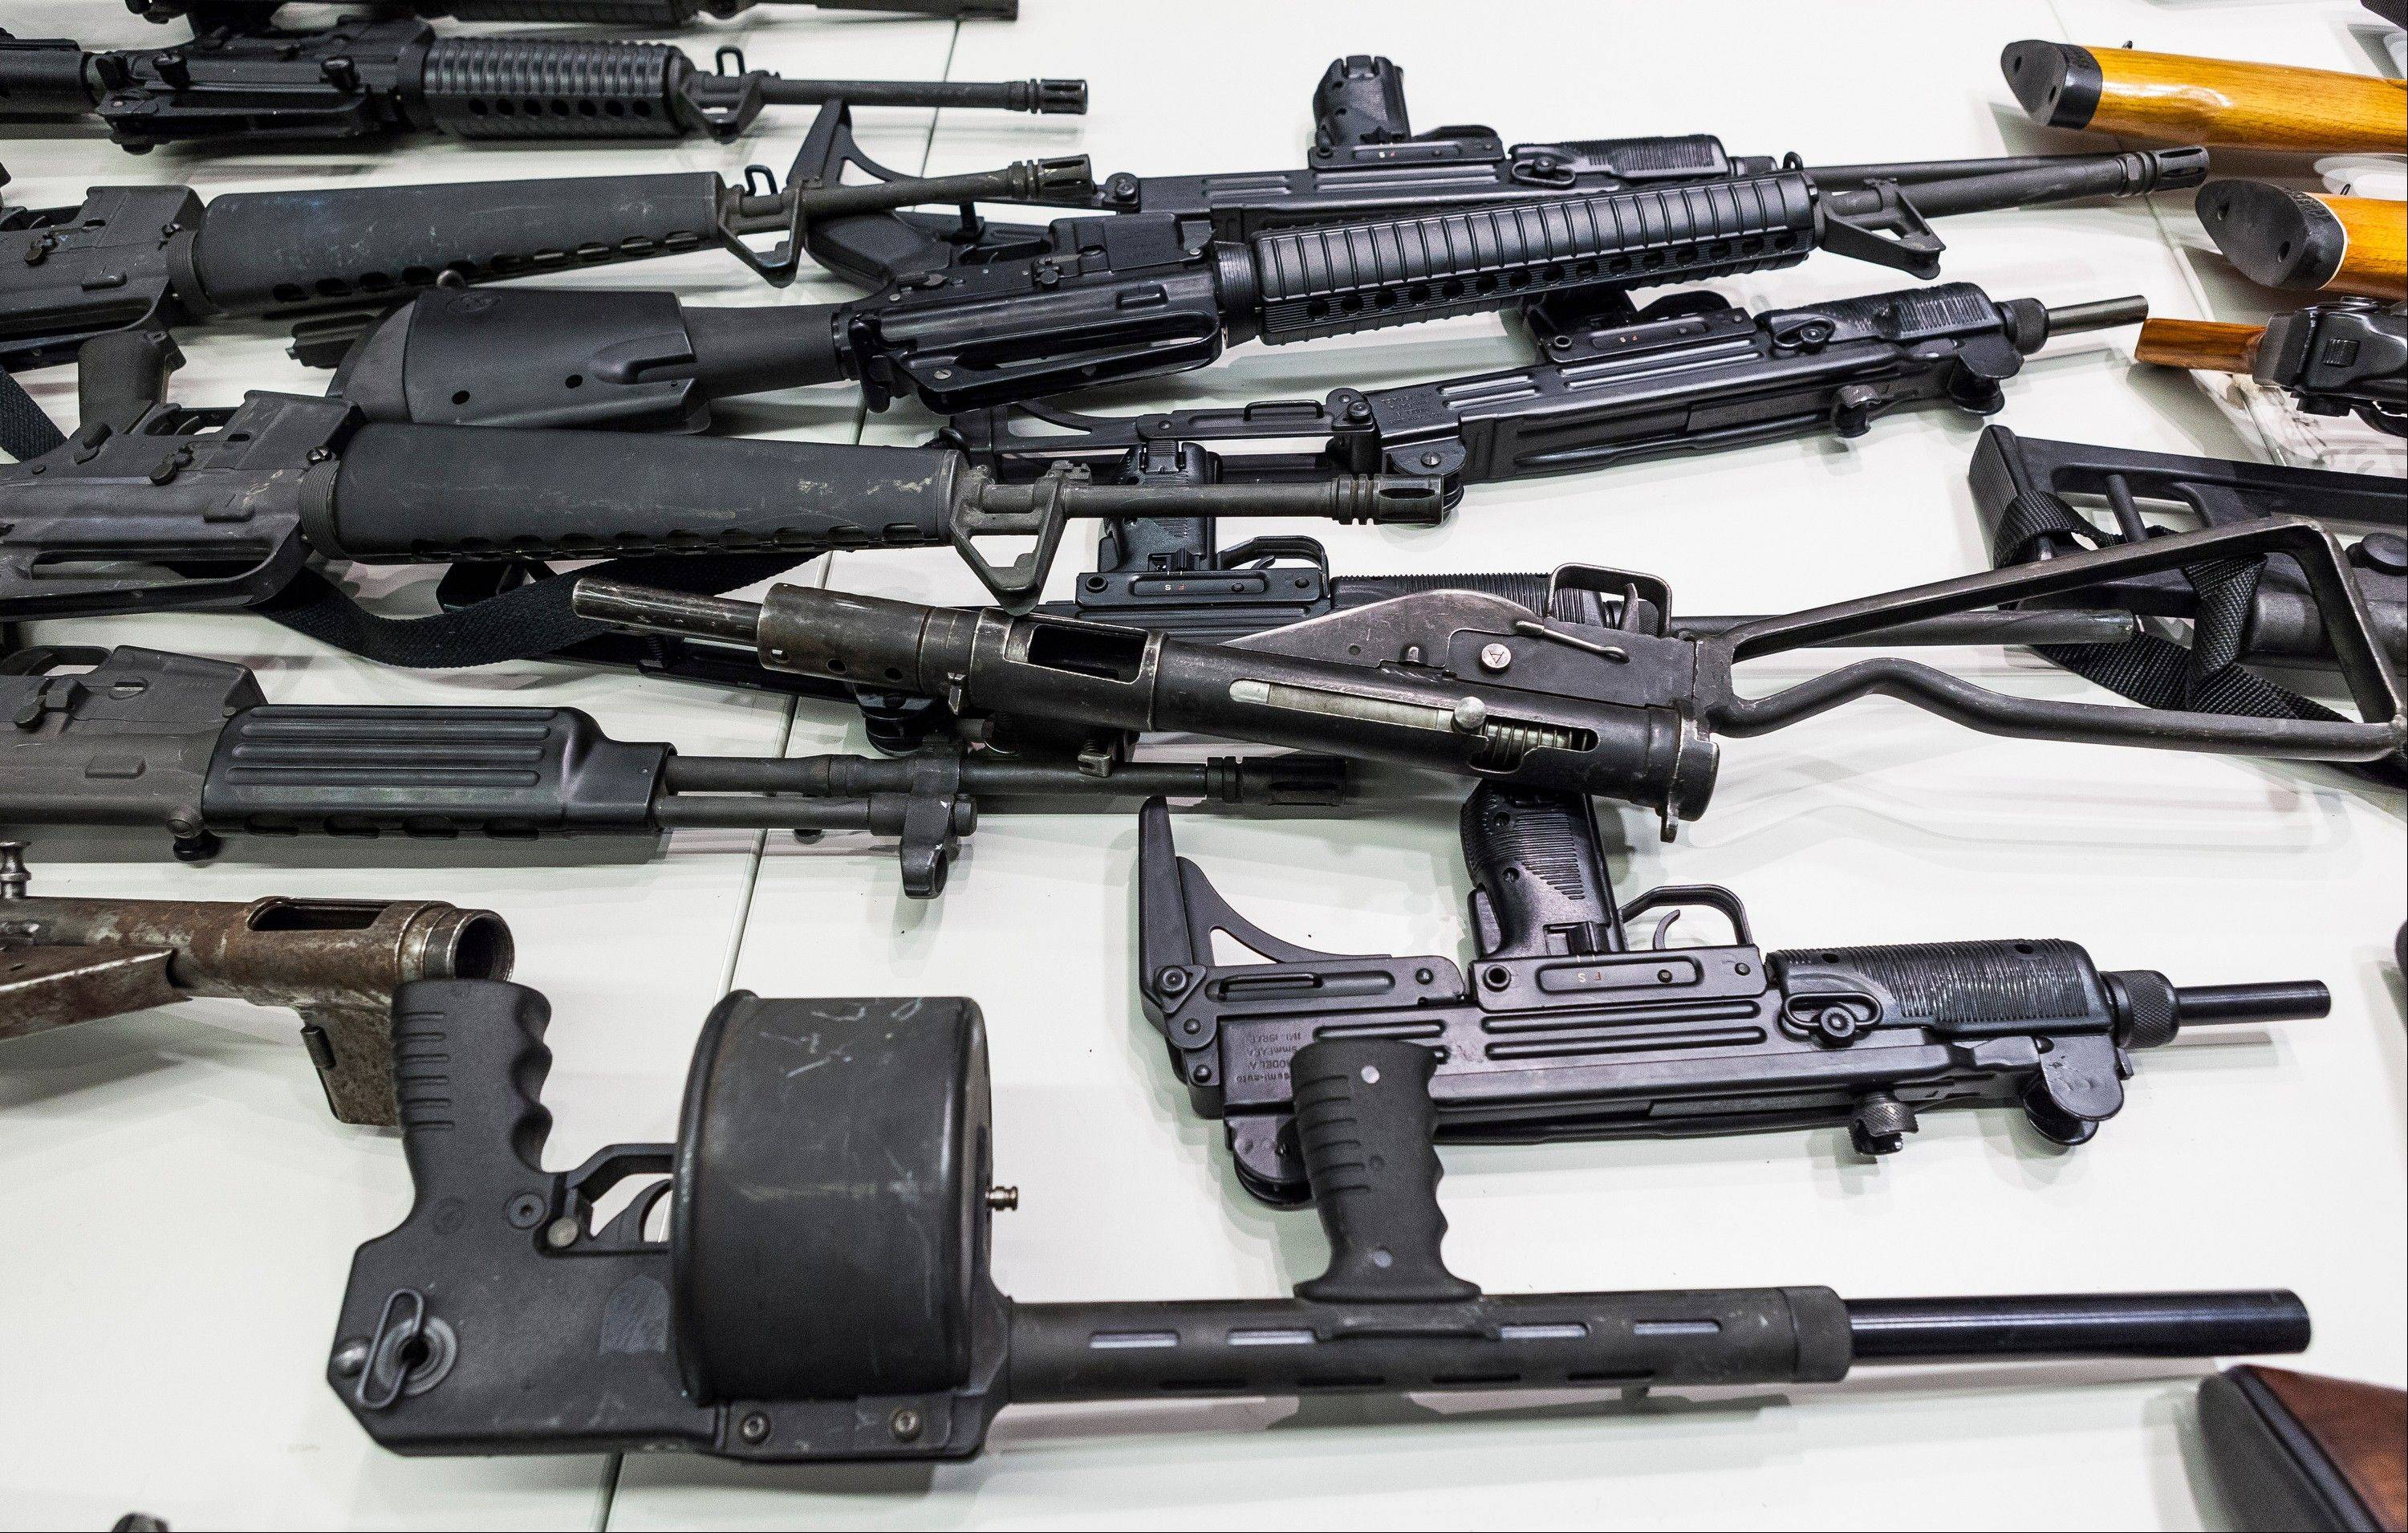 Some of the weapons collected in Los Angeles� Gun Buyback event last month are seen here.